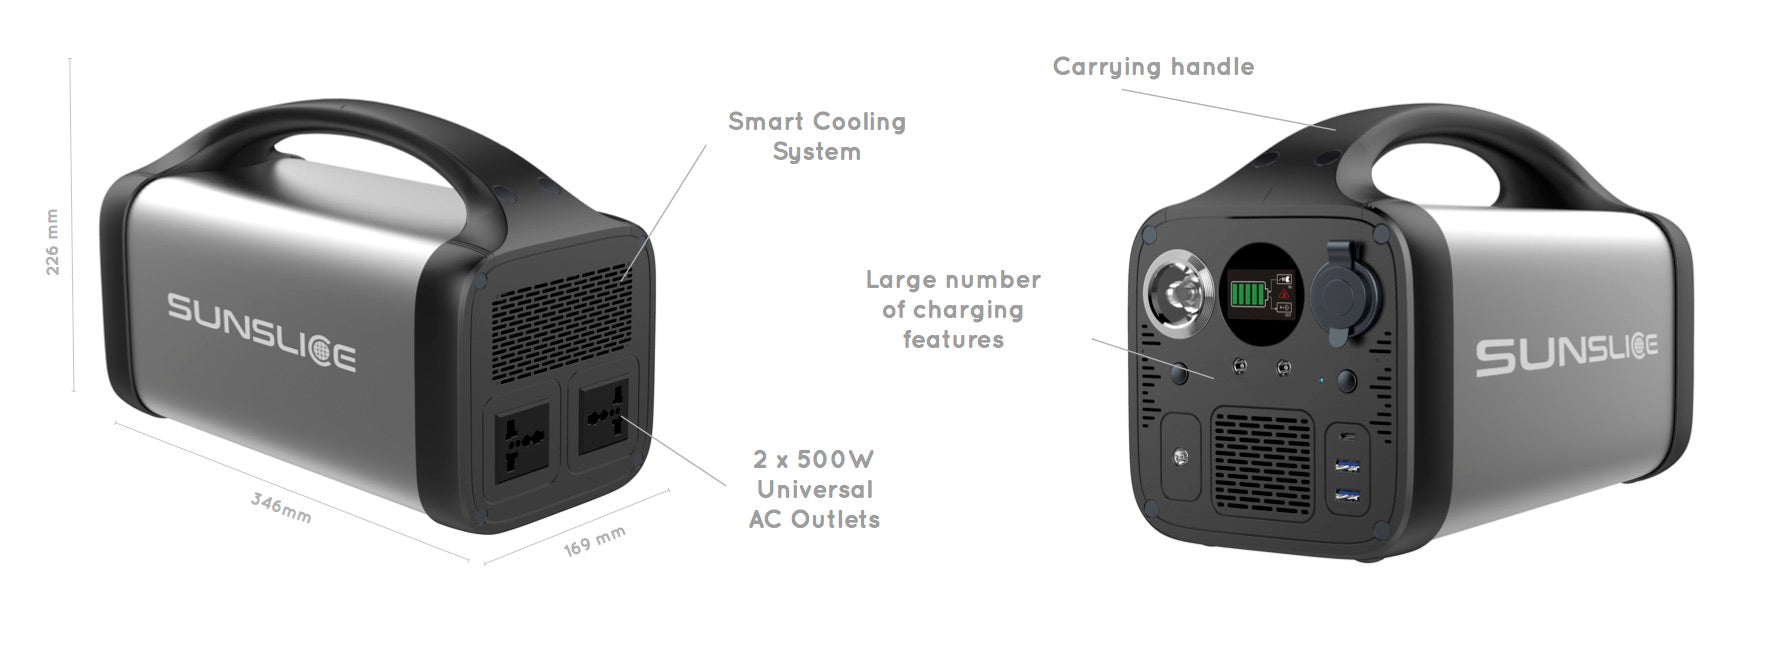 Powerful Power Station 800 Watts AC outlet